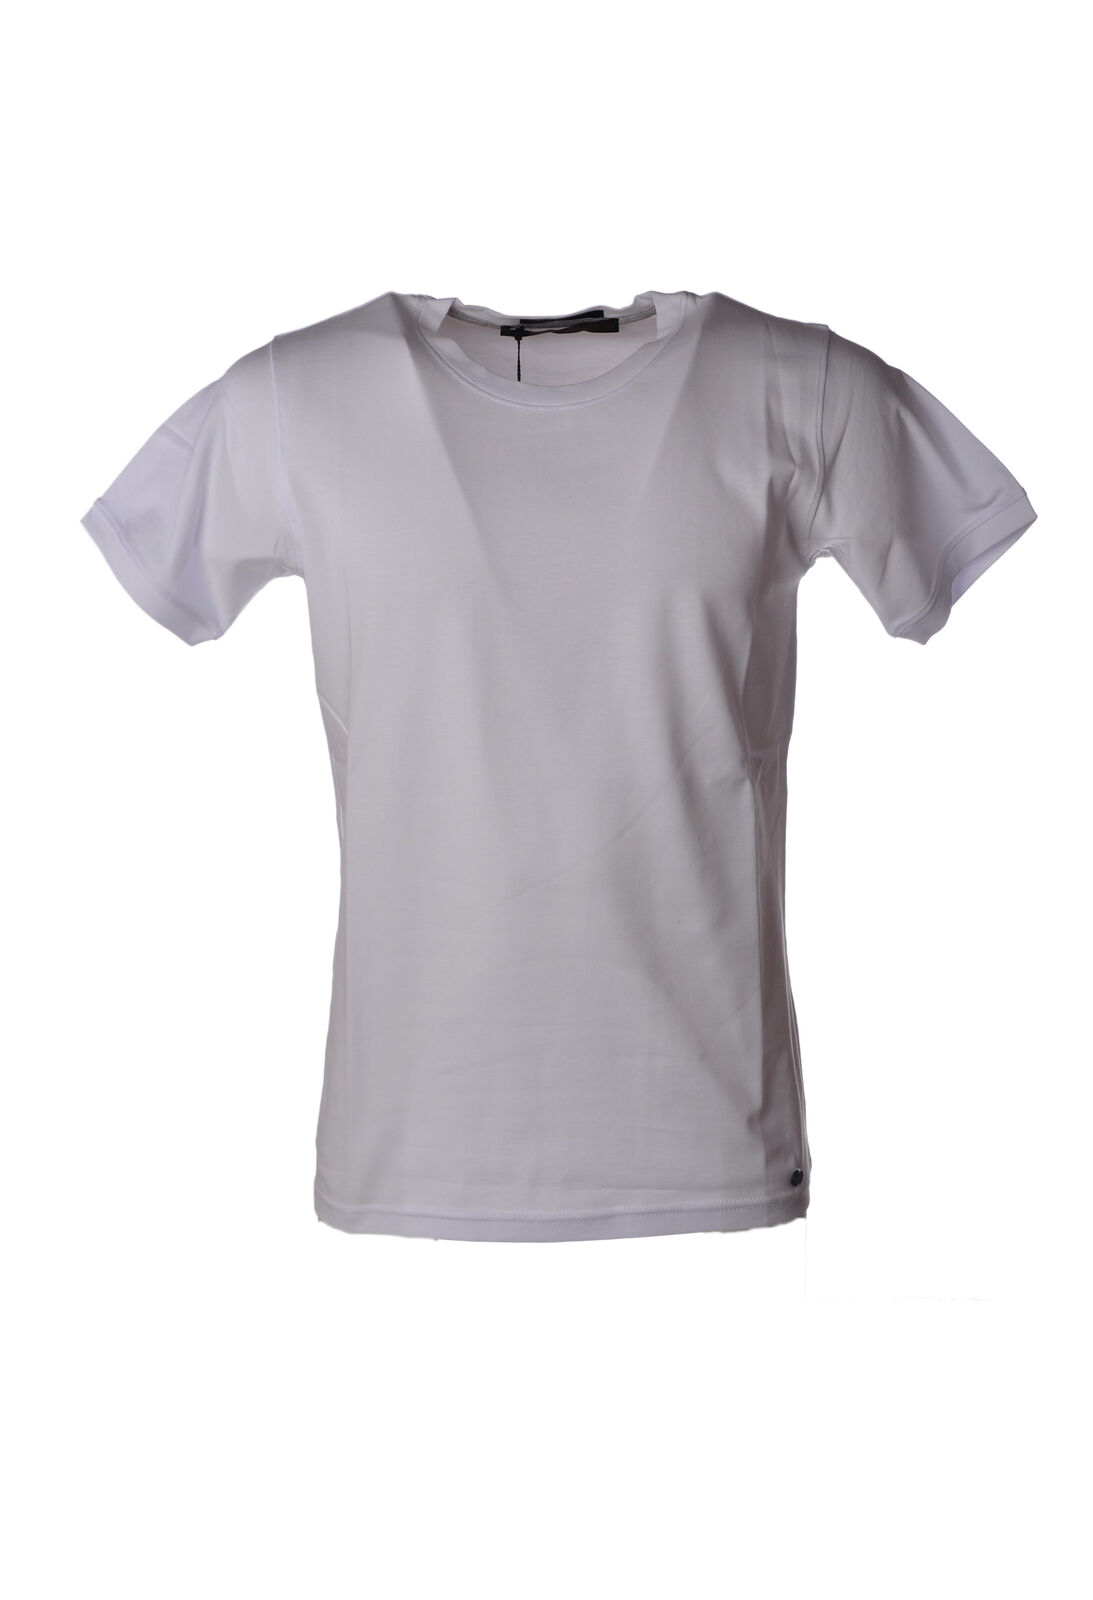 Laboratori Italiani - Topwear-T-shirts - Man - White - 5018405C184336